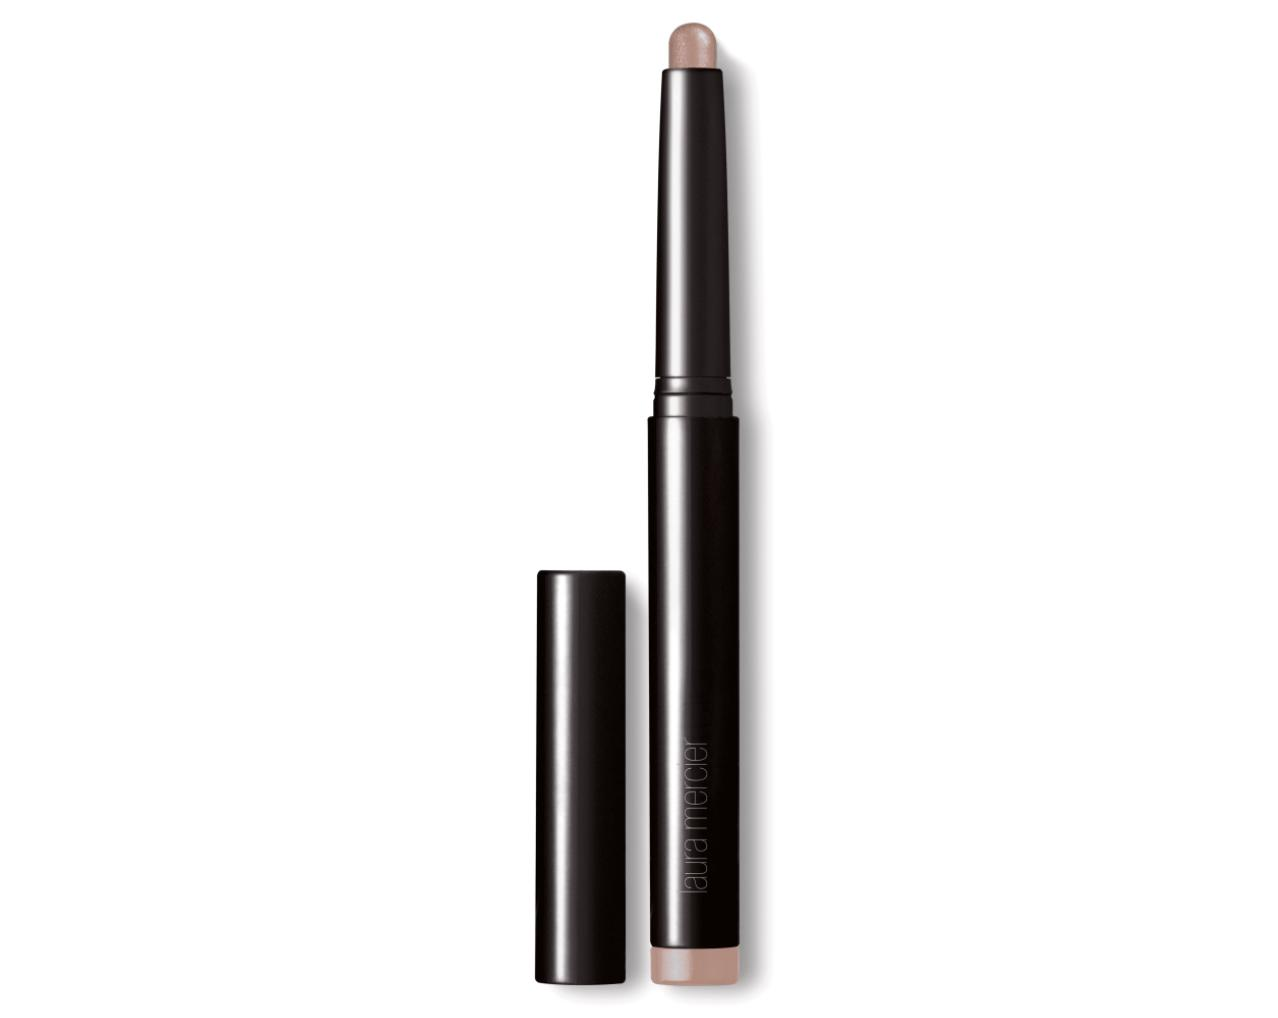 Laura Mercier Caviar Stick Eye Colour Pearl